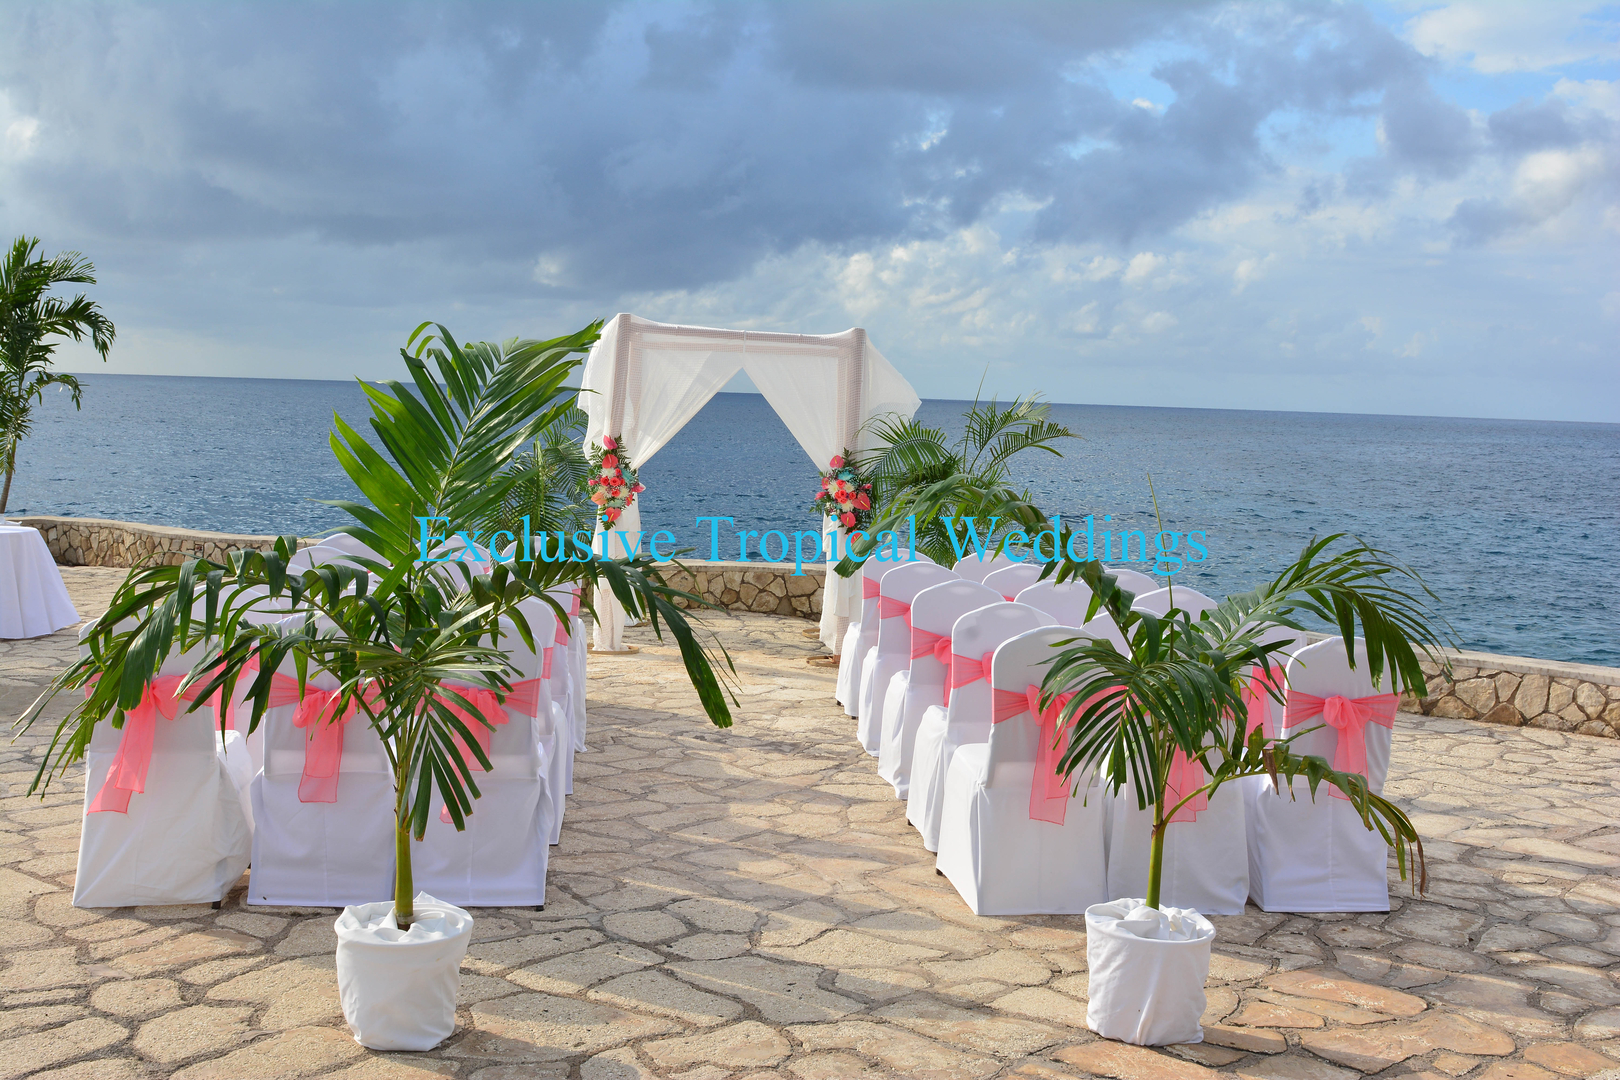 Dreaming Of Getting Married In Jamaica Exclusive Tropical Weddings Your Wedding Planner Can Help Plan Destination